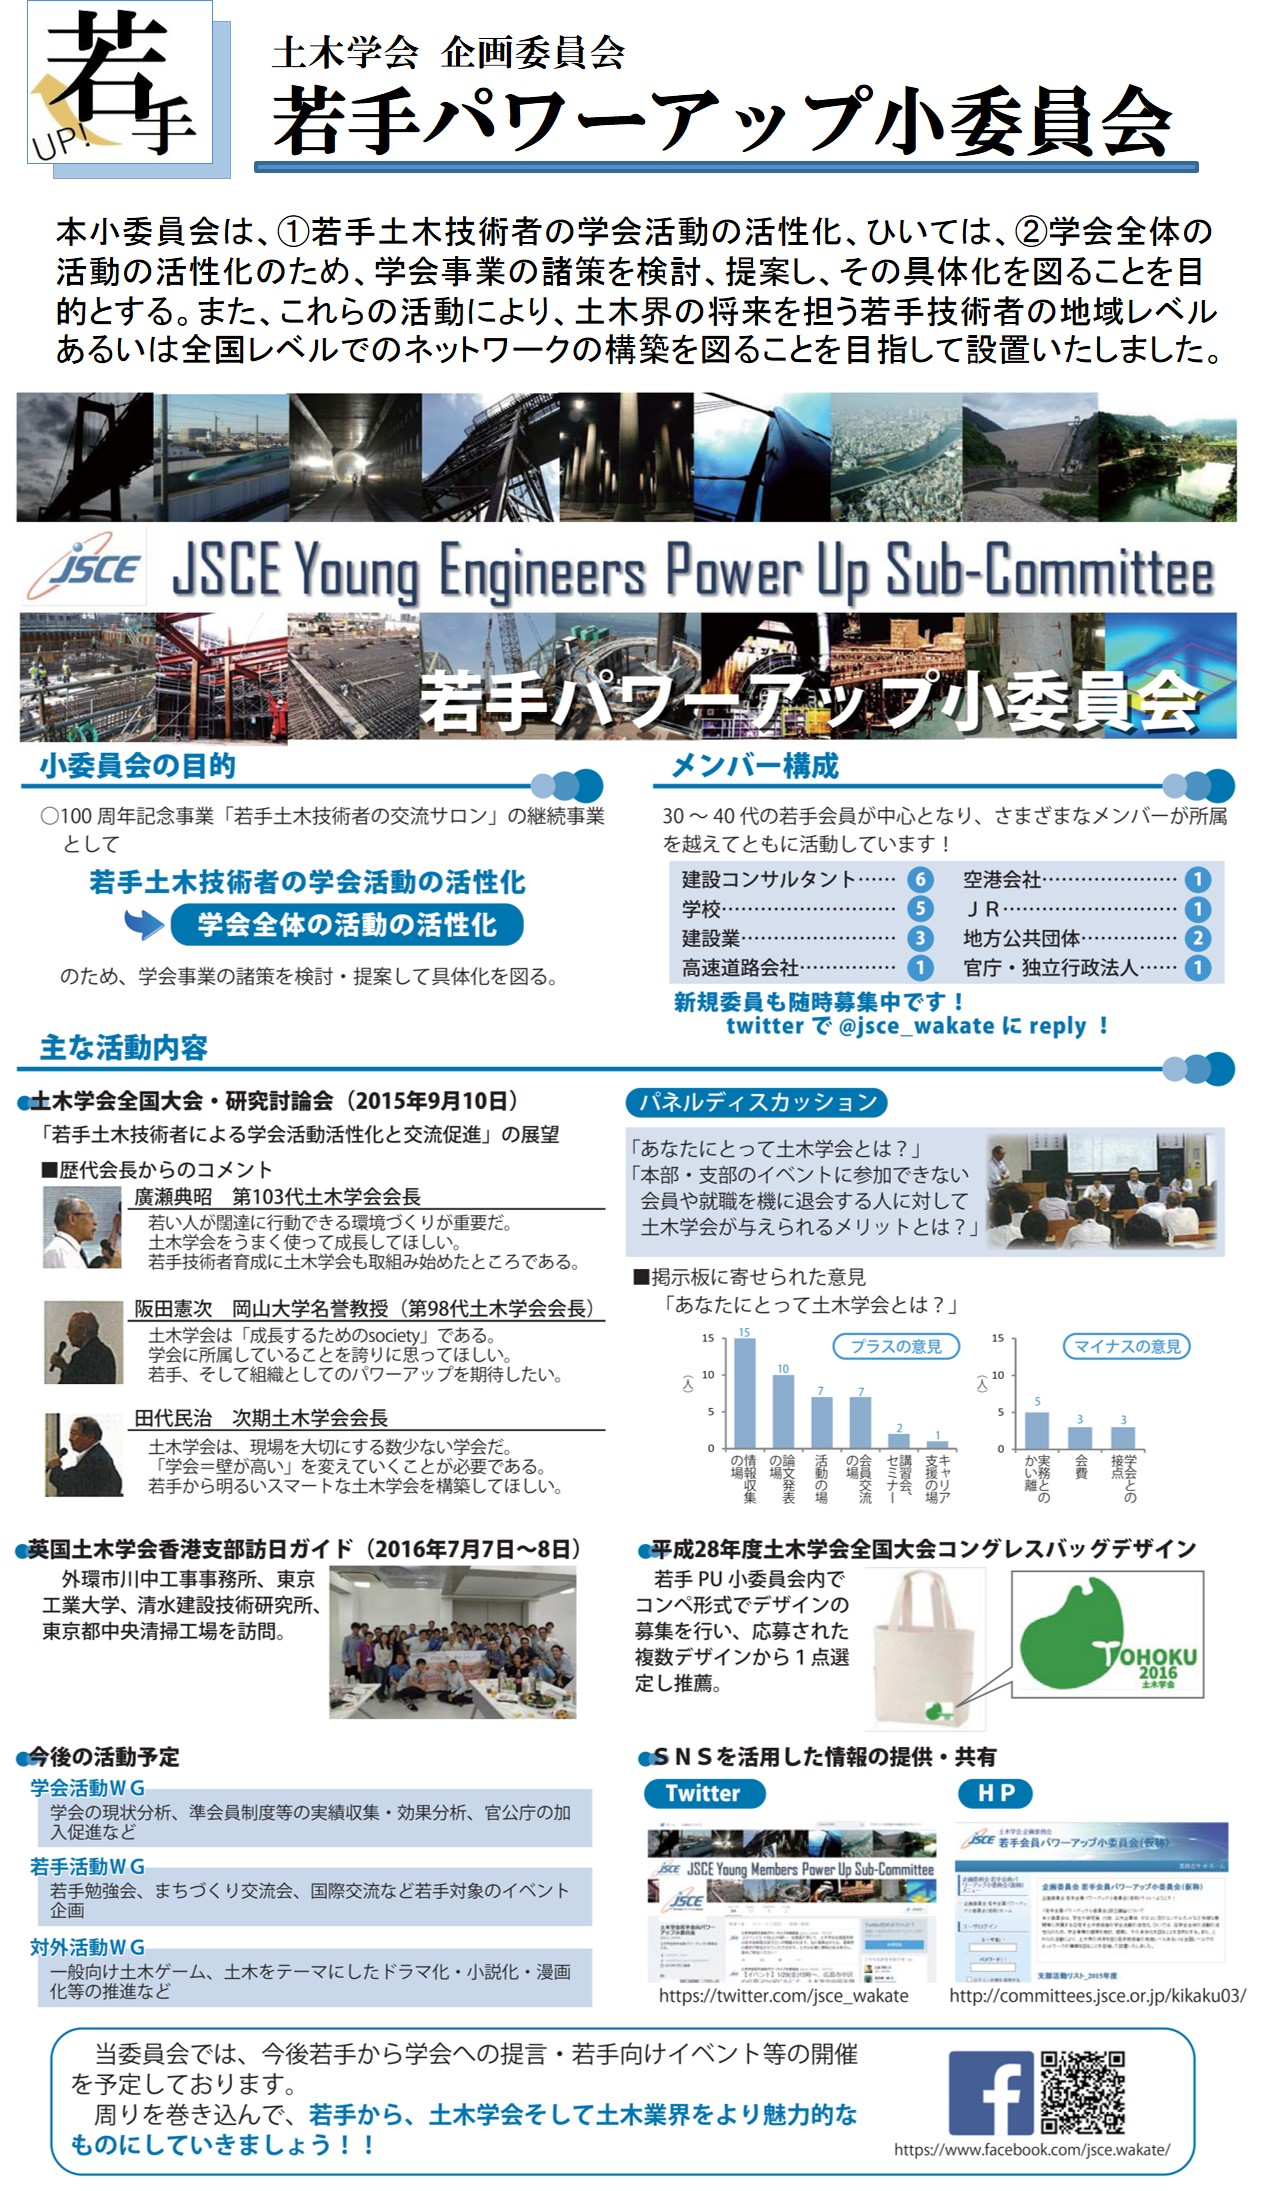 http://committees.jsce.or.jp/kikaku03/system/files/wakateactivity-1.jpg